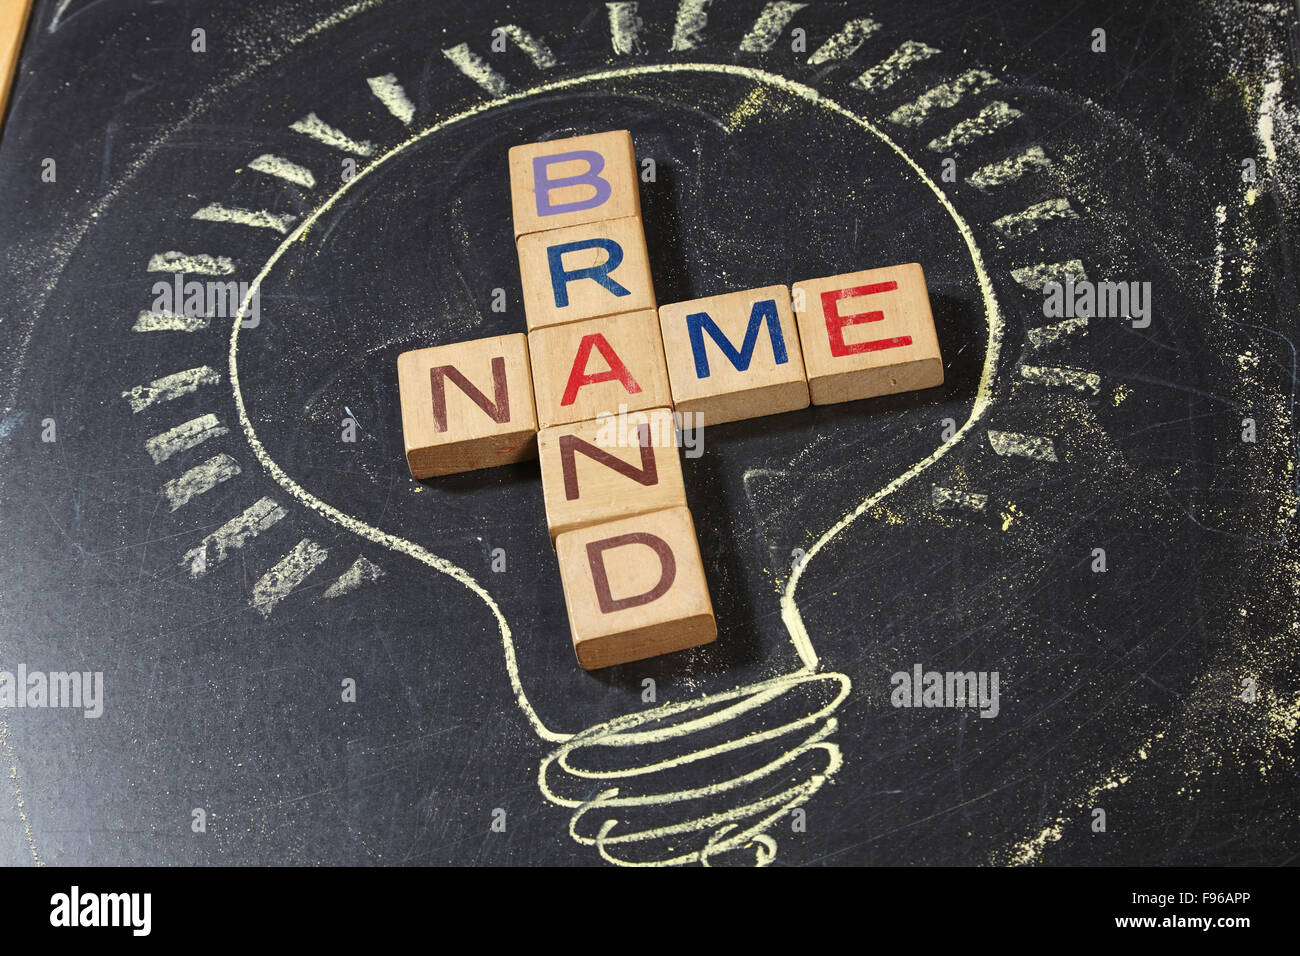 Parete Di Legno Cruciverba : Block name immagini & block name fotos stock alamy